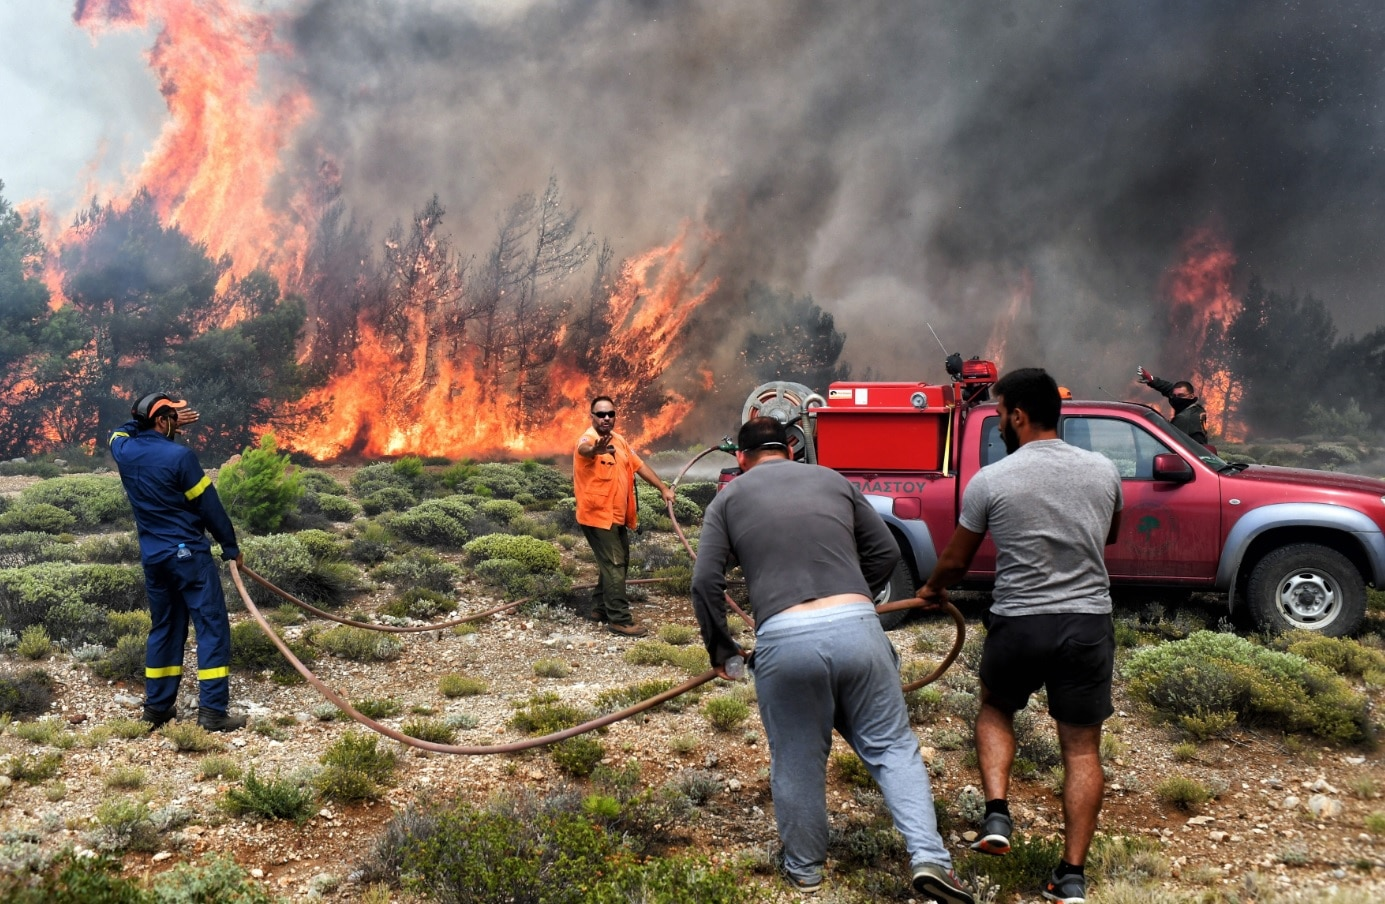 Firefighters and volunteers try to extinguish a wildfire raging in Verori, near Loutraki city, Peloponnese, southern Greece, 24 July 2018.